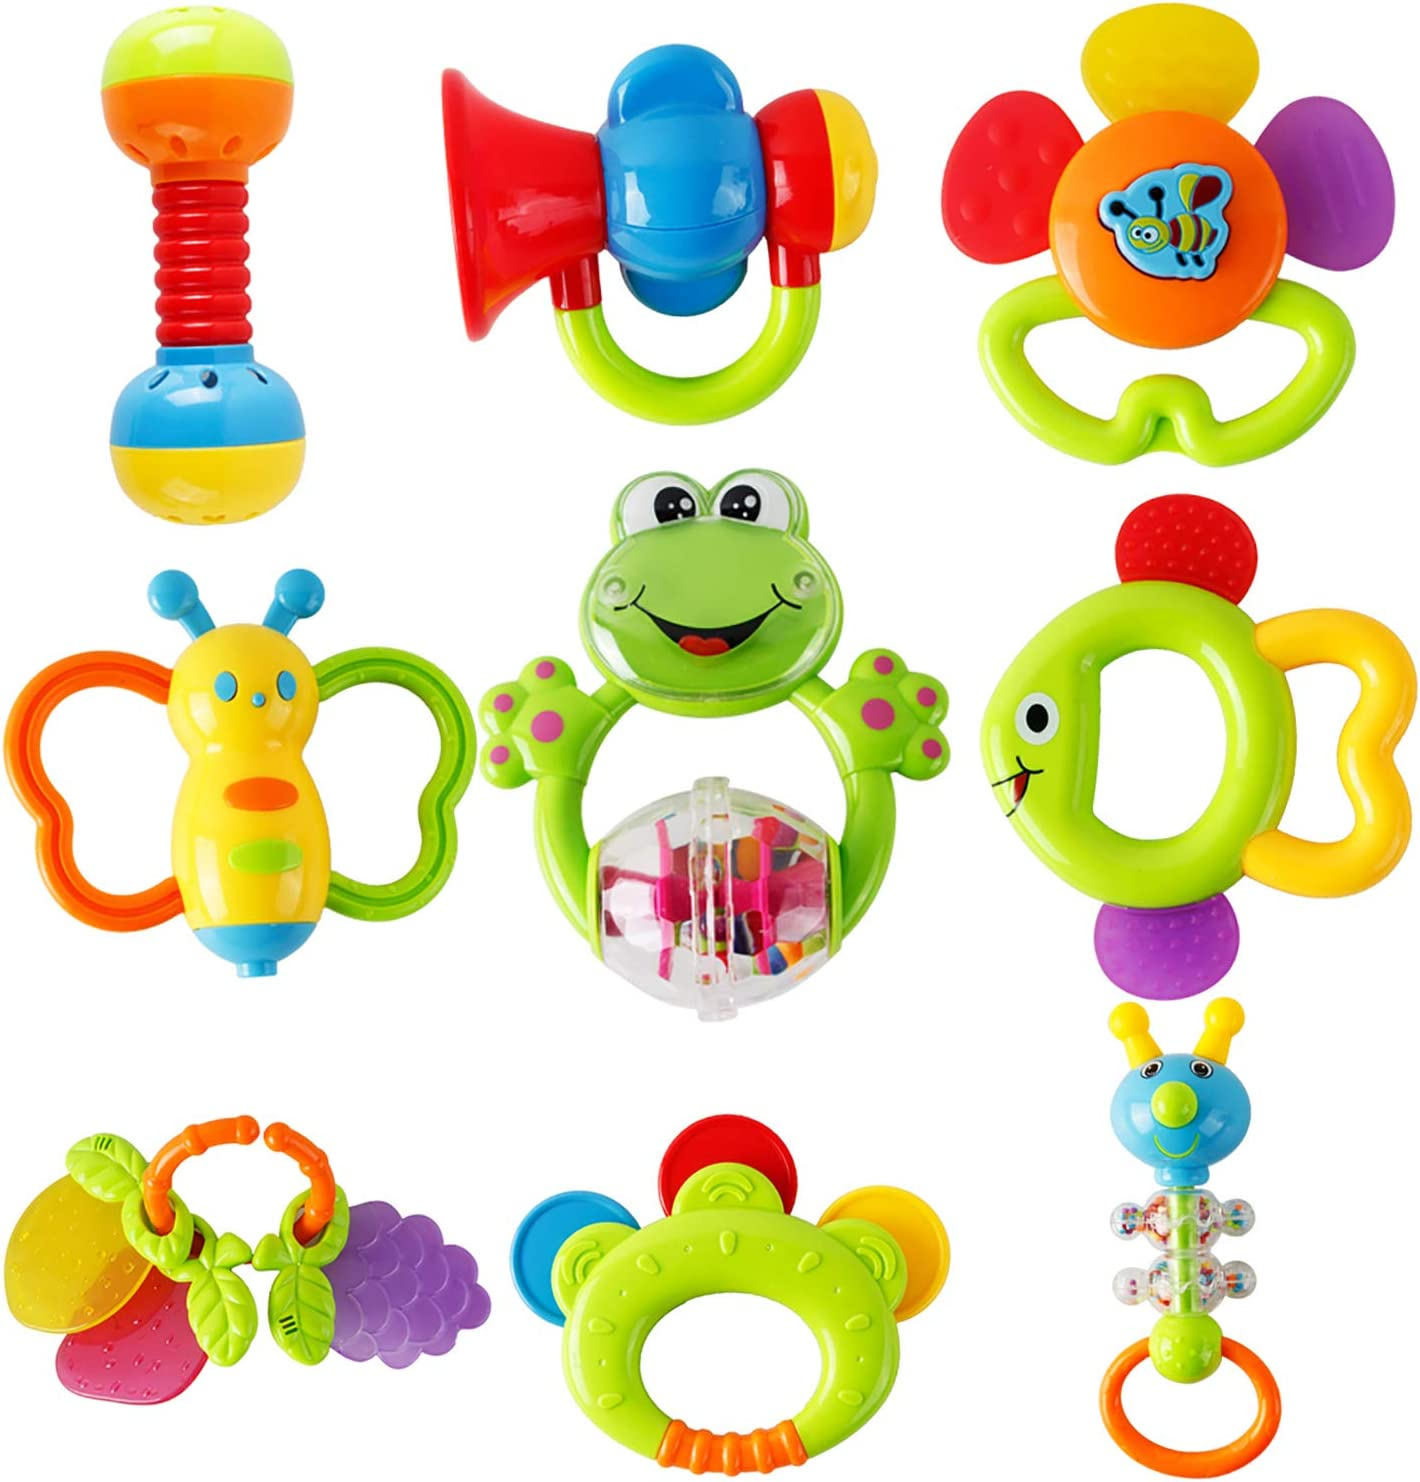 Rattle Teething Toys for Baby Sensory Baby Toy 0-6 Months Teether Shaker Grab Rattle Baby Infant Newborn Toys Early Educational Toys for 3 6 9 12 Month Boys Girls